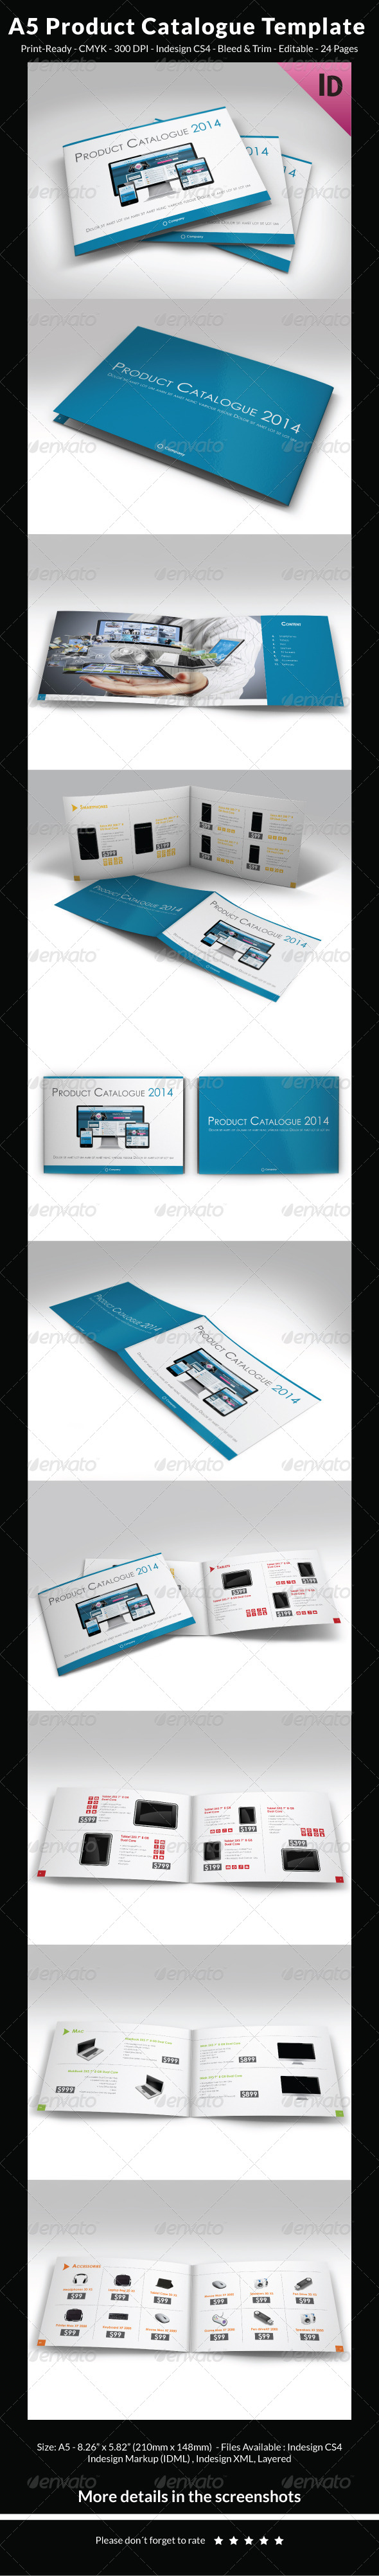 GraphicRiver A5 Product Catalogue Template 6854597